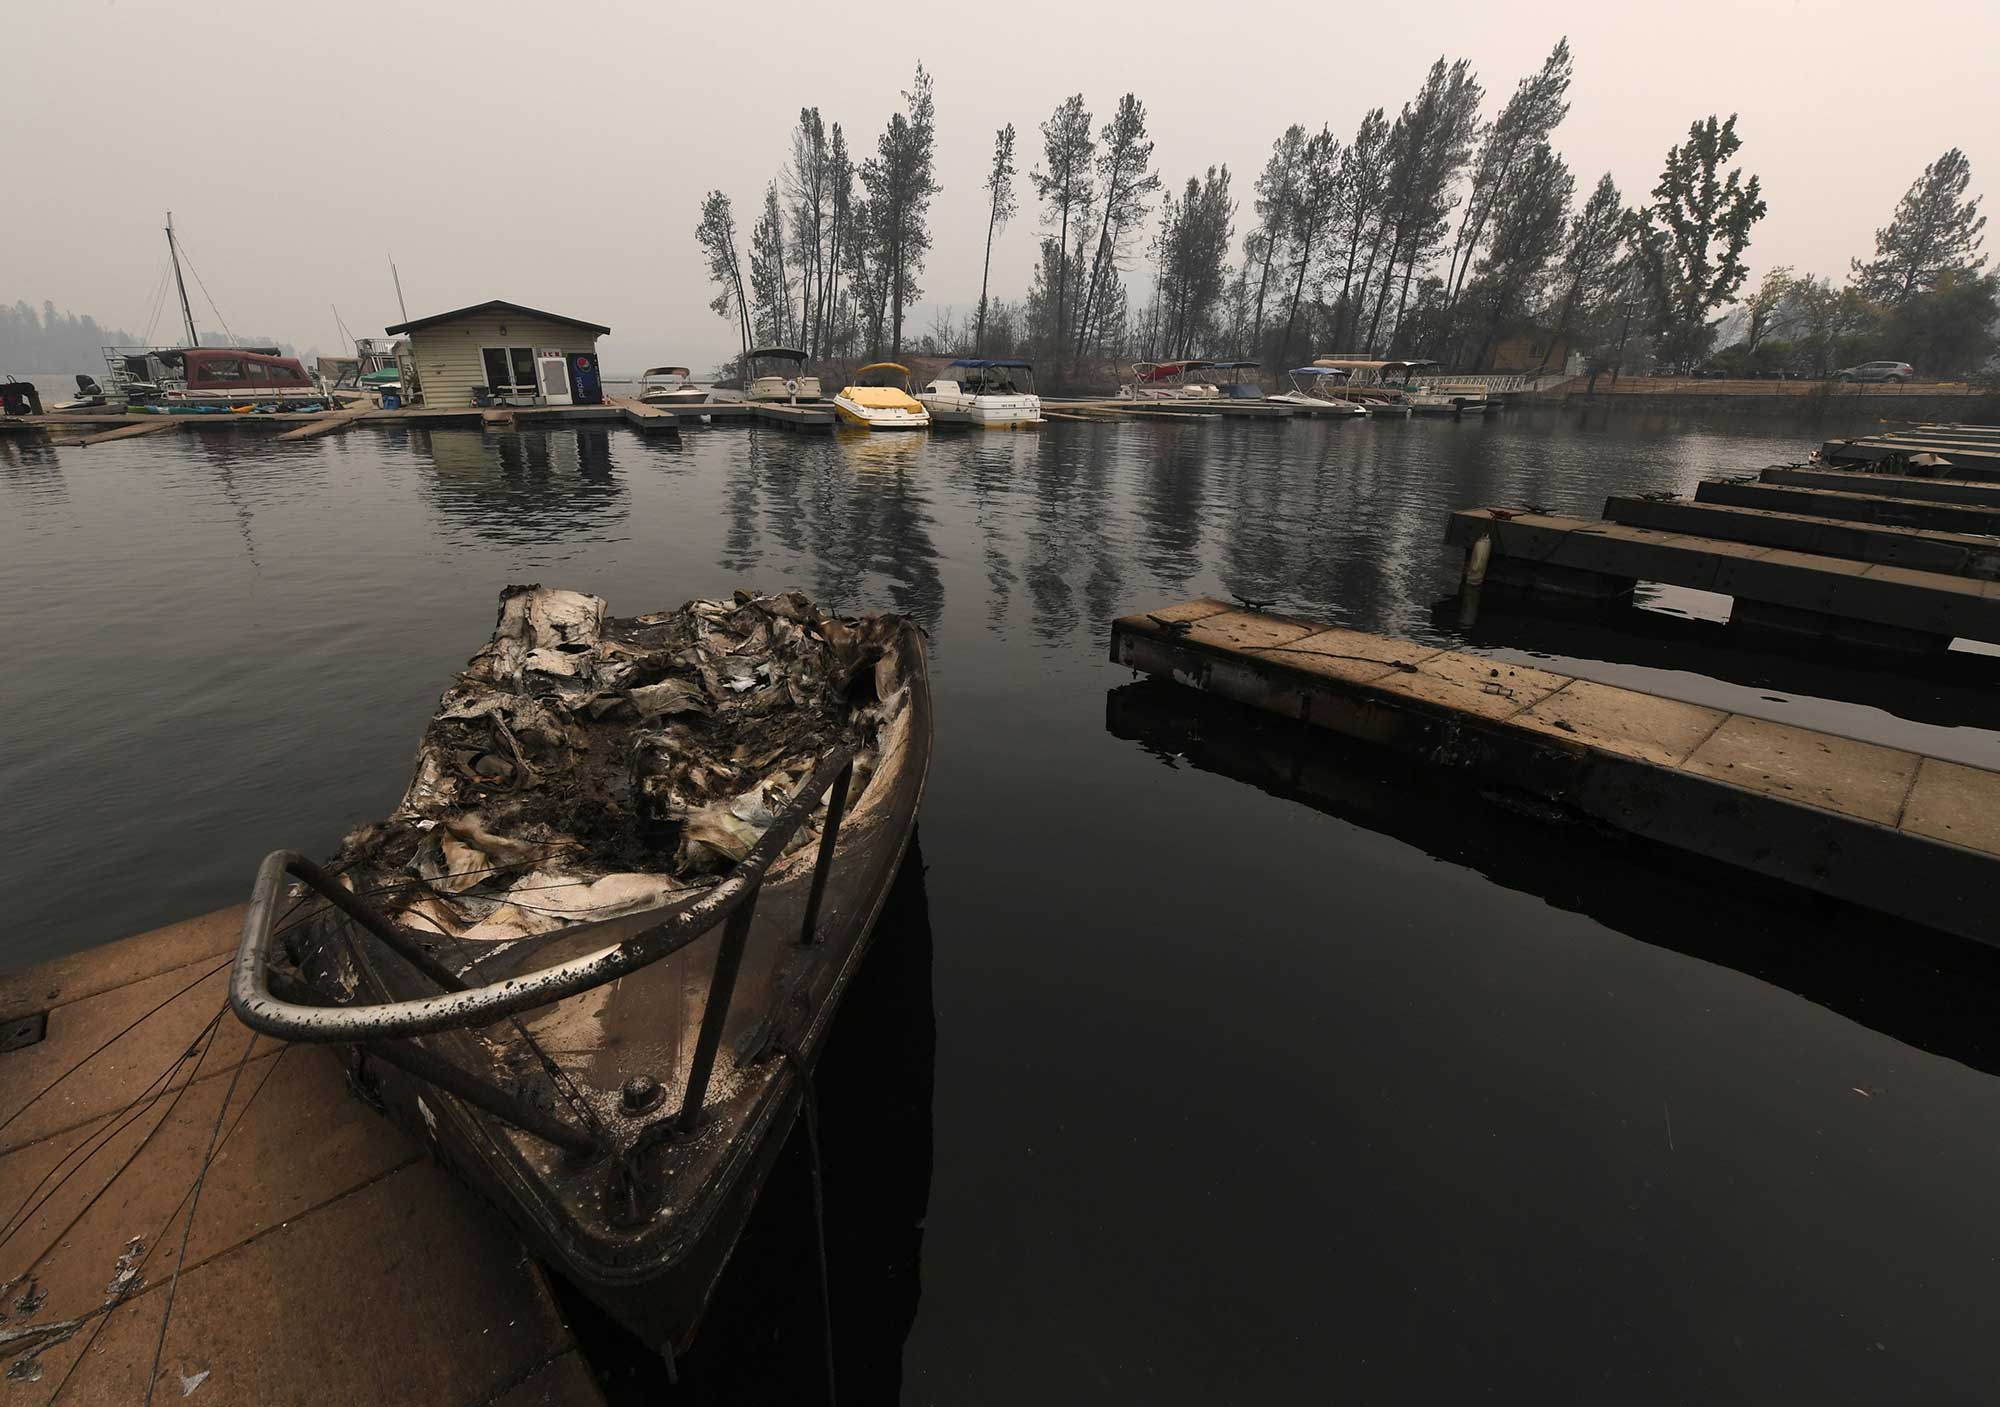 <div class='meta'><div class='origin-logo' data-origin='none'></div><span class='caption-text' data-credit='MARK RALSTON/AFP/Getty Images'>A burnt out boat sits at a marina on Whiskeytown Lake after damage from the Carr fire near Redding, California, on July 30, 2018.</span></div>